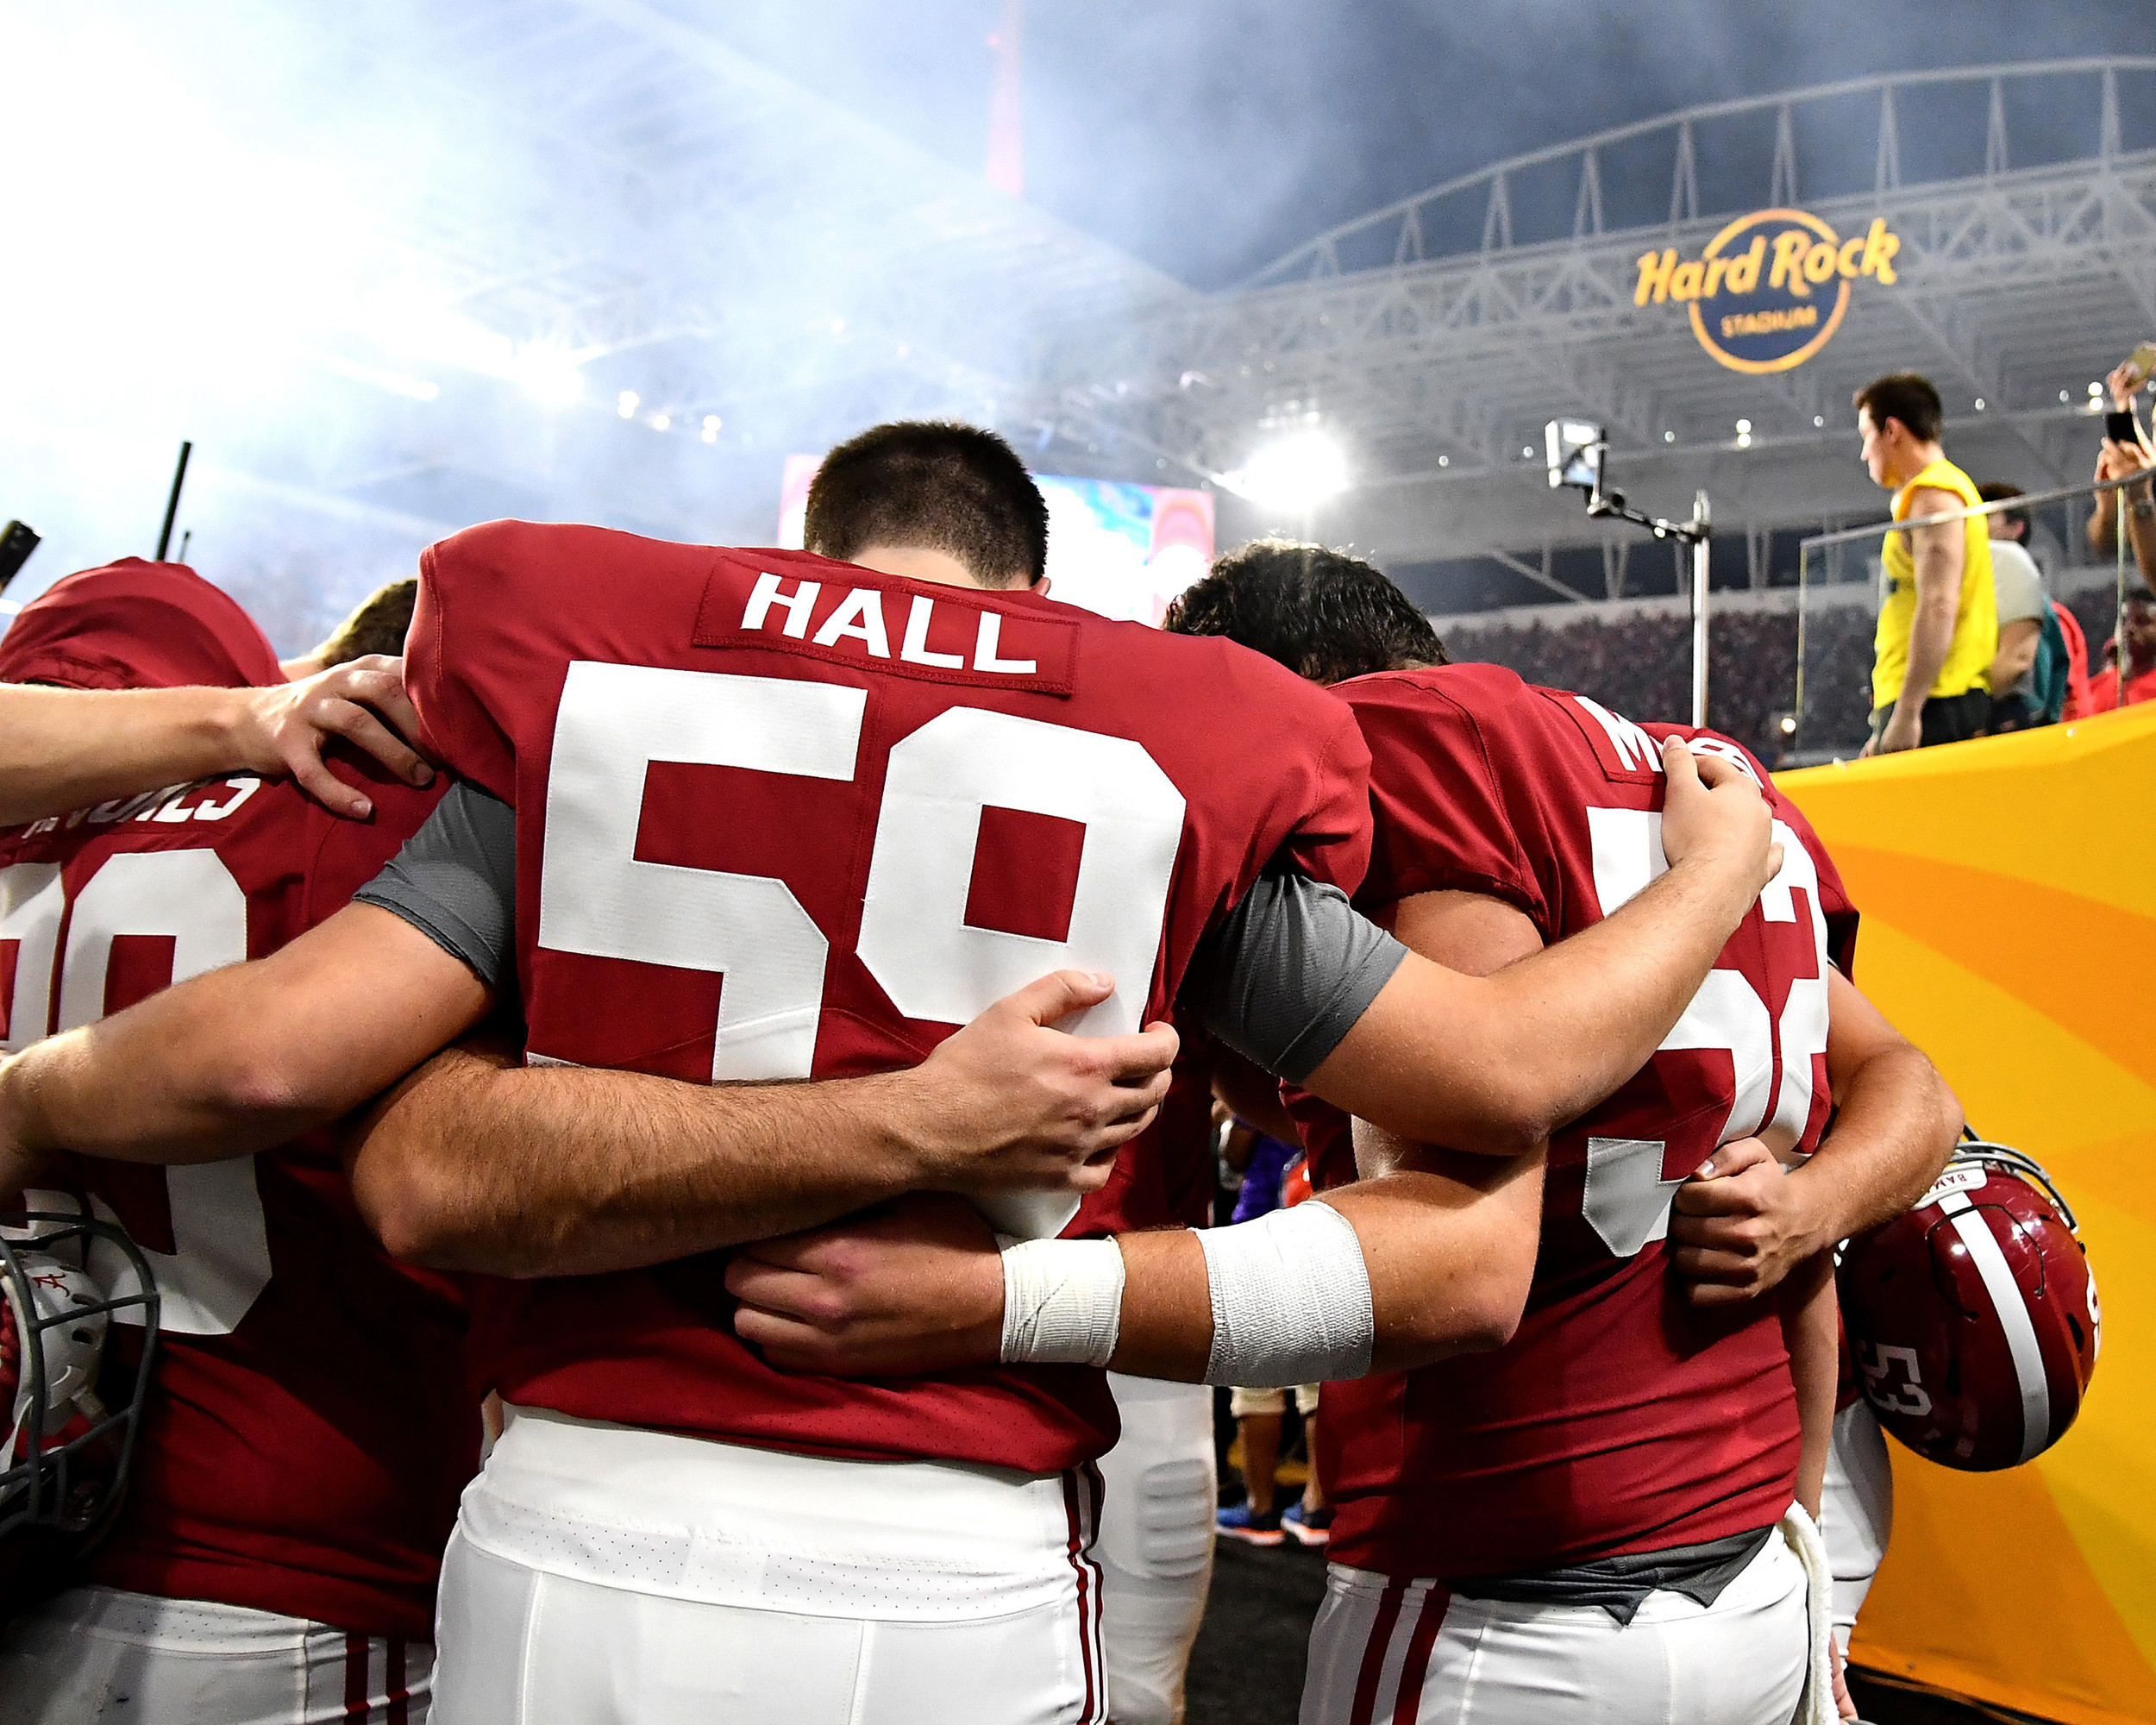 Prior to the kickoff of the Capital One Orange Bowl, featuring the Alabama Crimson Tide and the Oklahoma Sooners, at Hard Rock Stadium in Miami Gardens, Fla., Saturday, Dec. 29, 2018. Alabama wins 45-34. (Photo by Lee Walls)